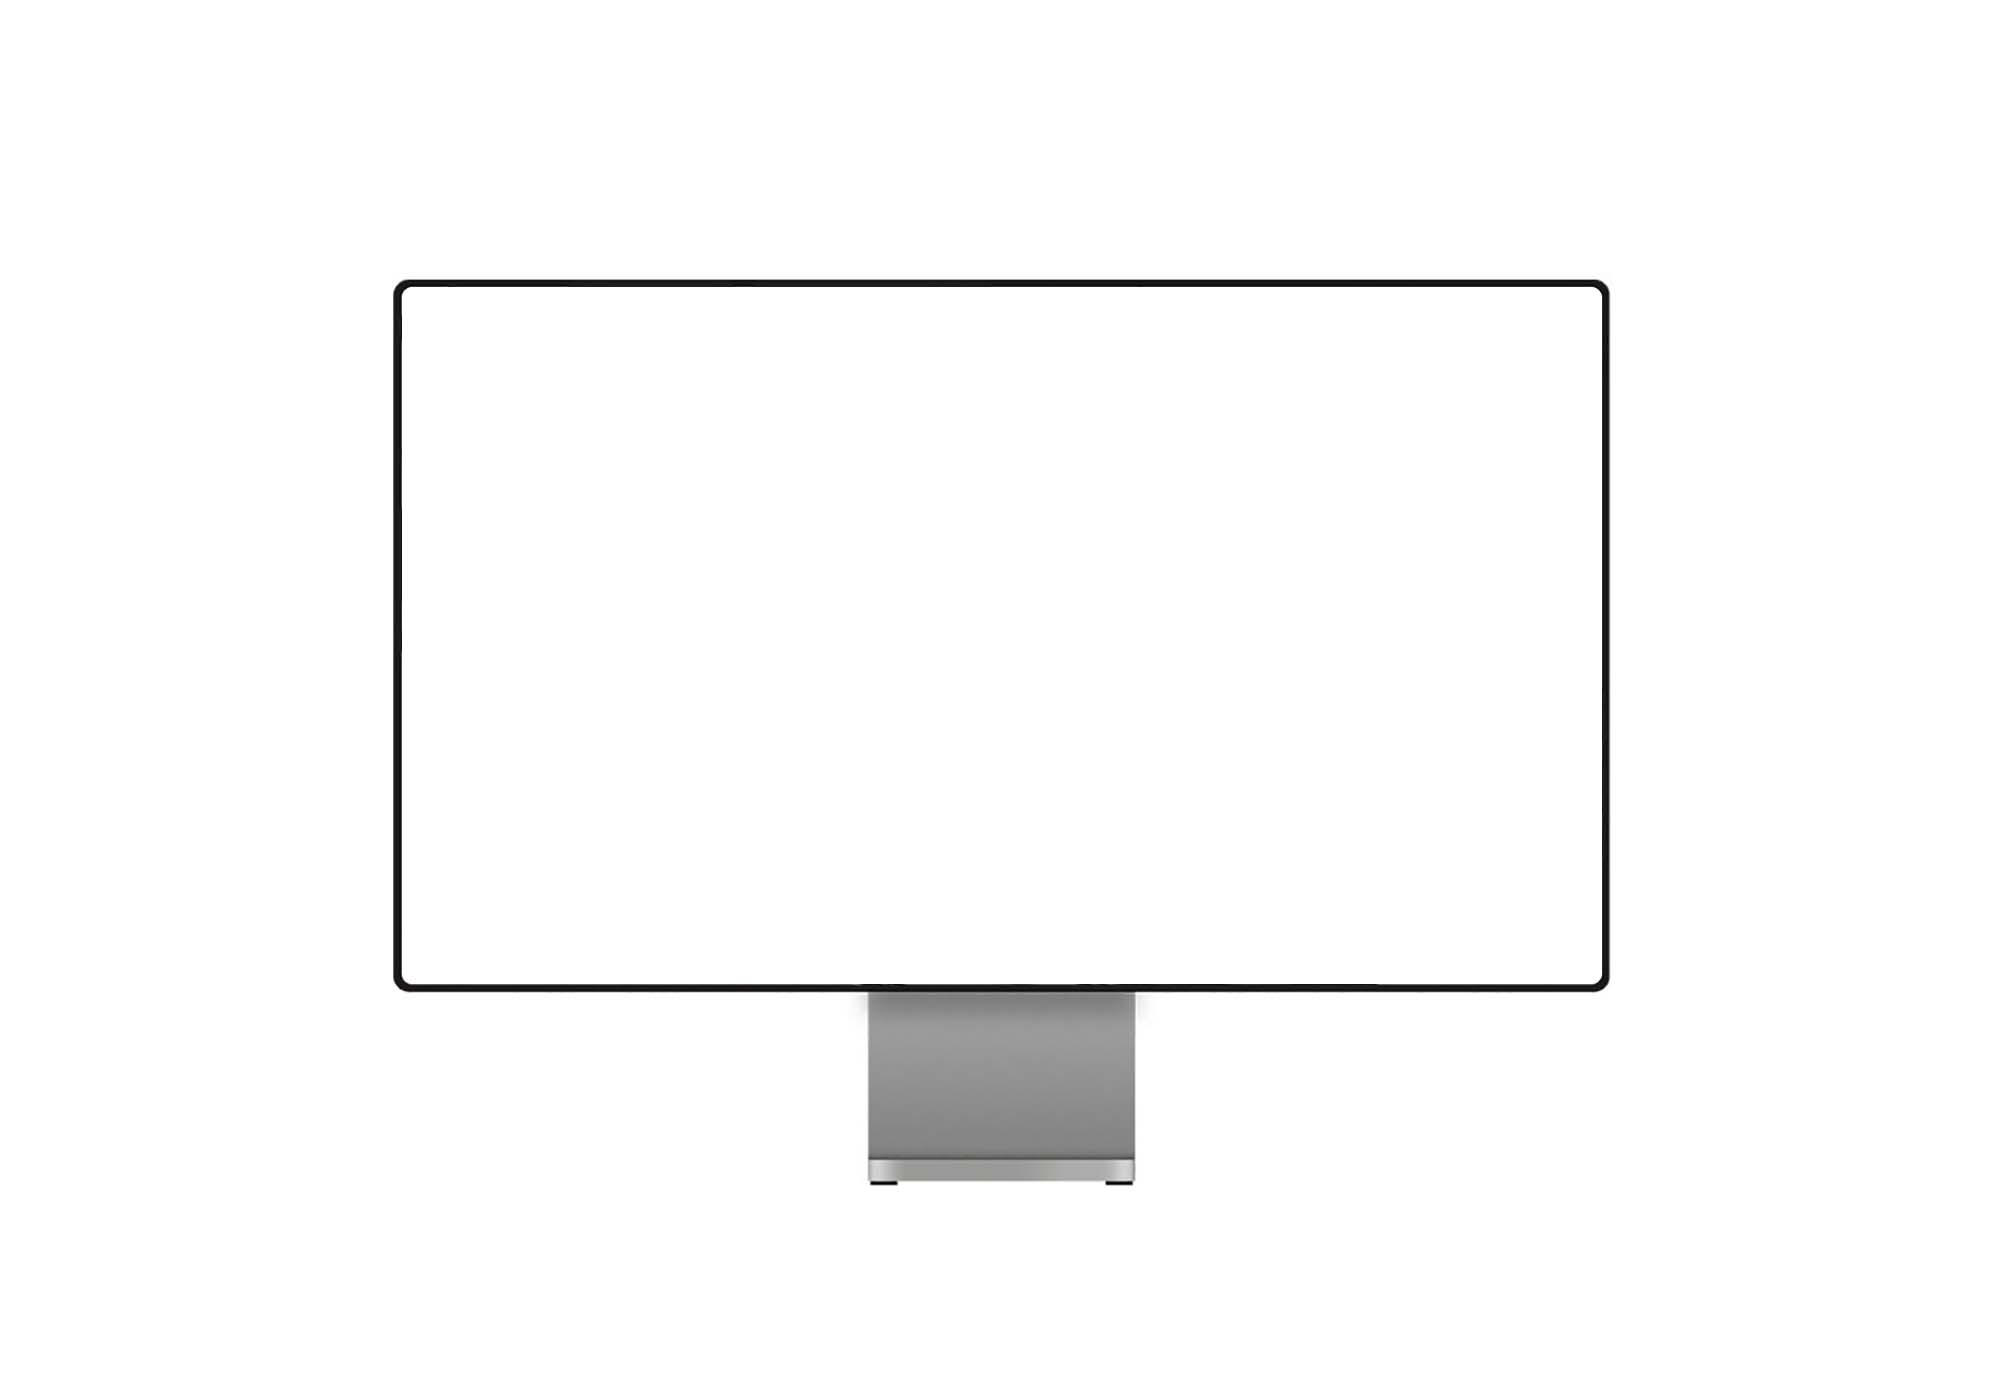 HQ Computer Screen Display Mockup 2